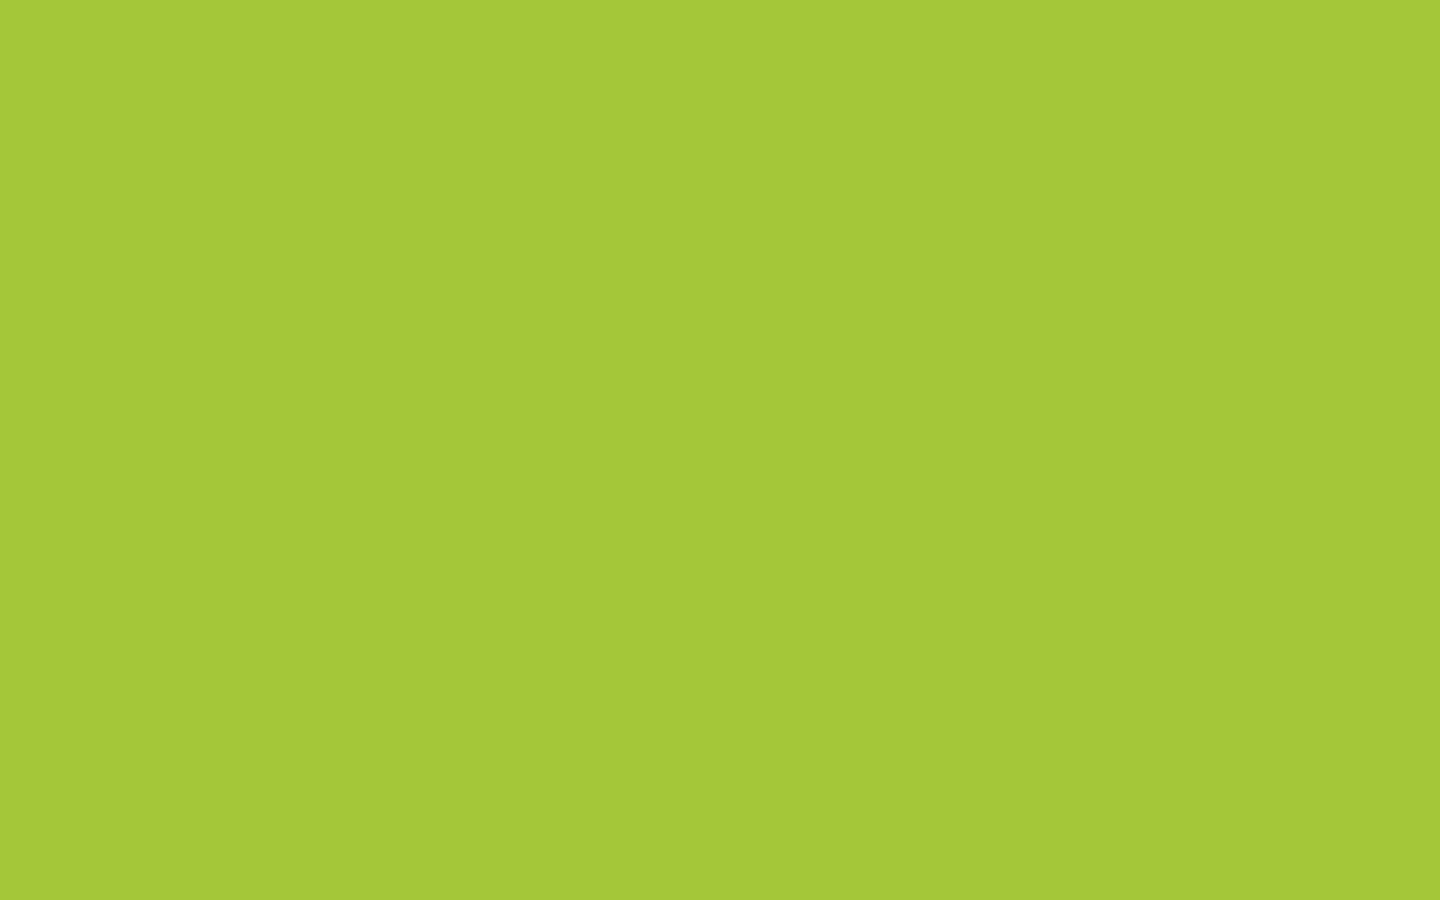 1440x900 Android Green Solid Color Background